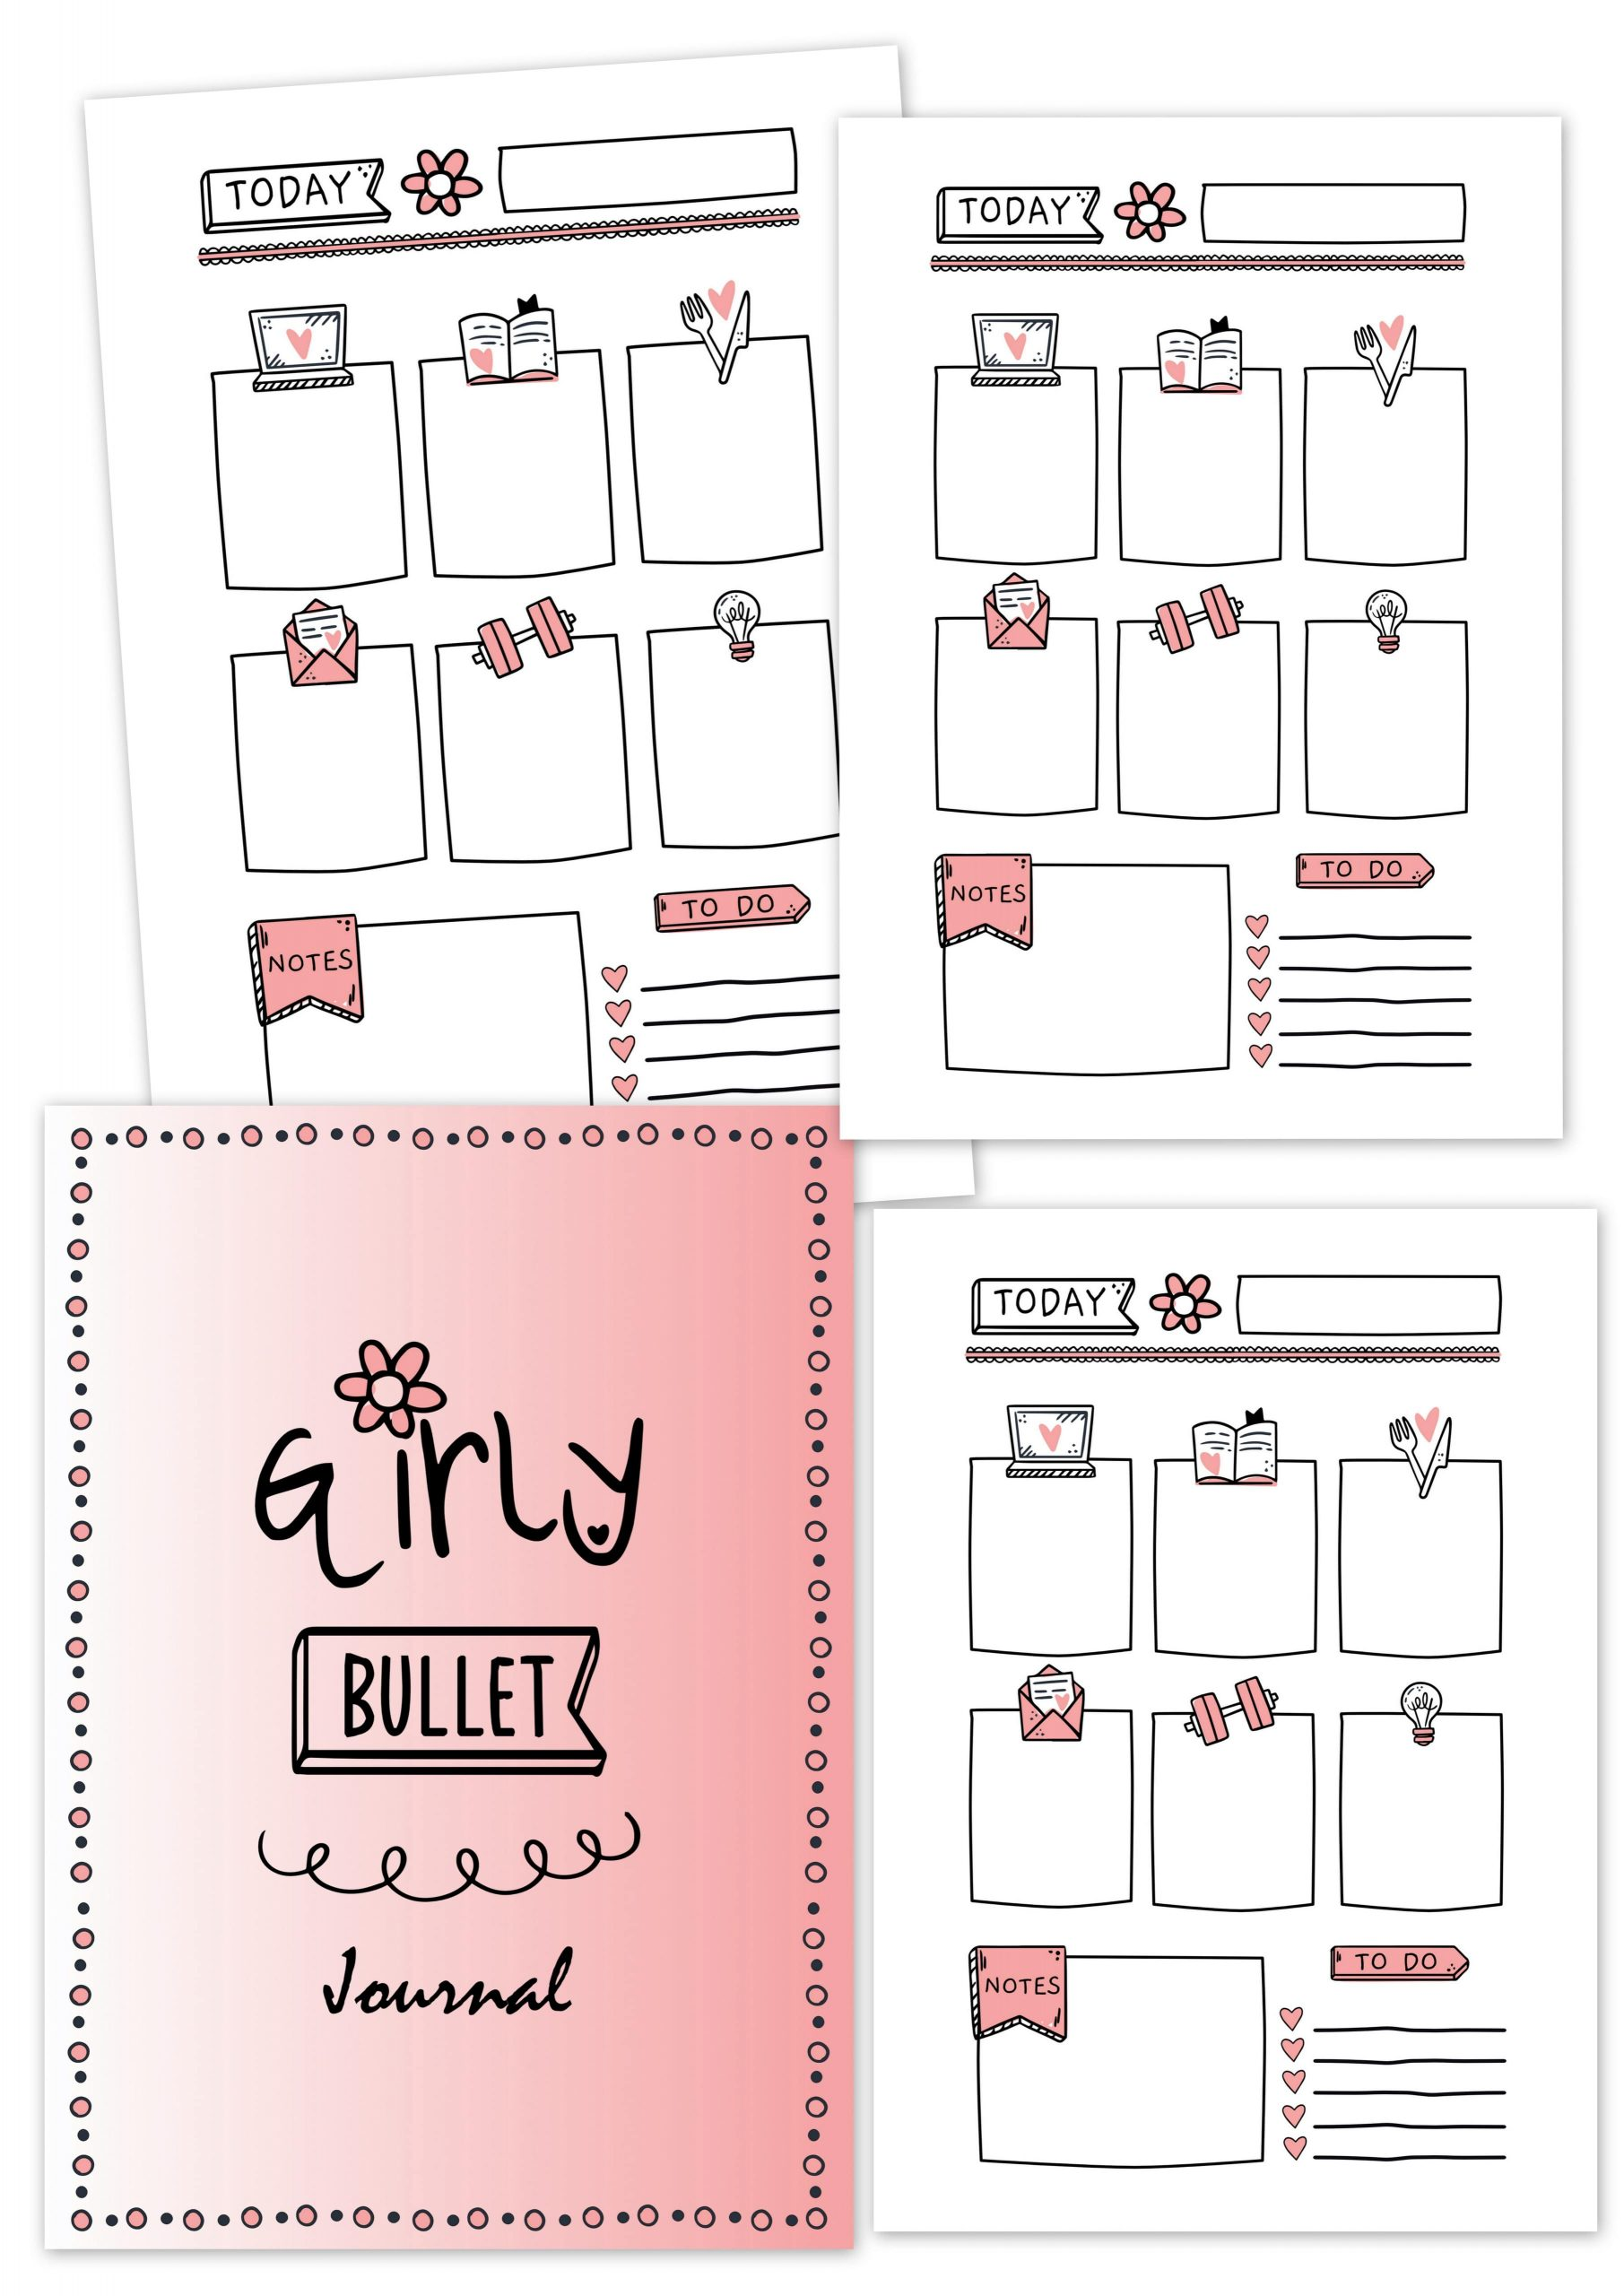 girly bullet journal fashion fille agenda cahier planner planificasoeurs sunnah